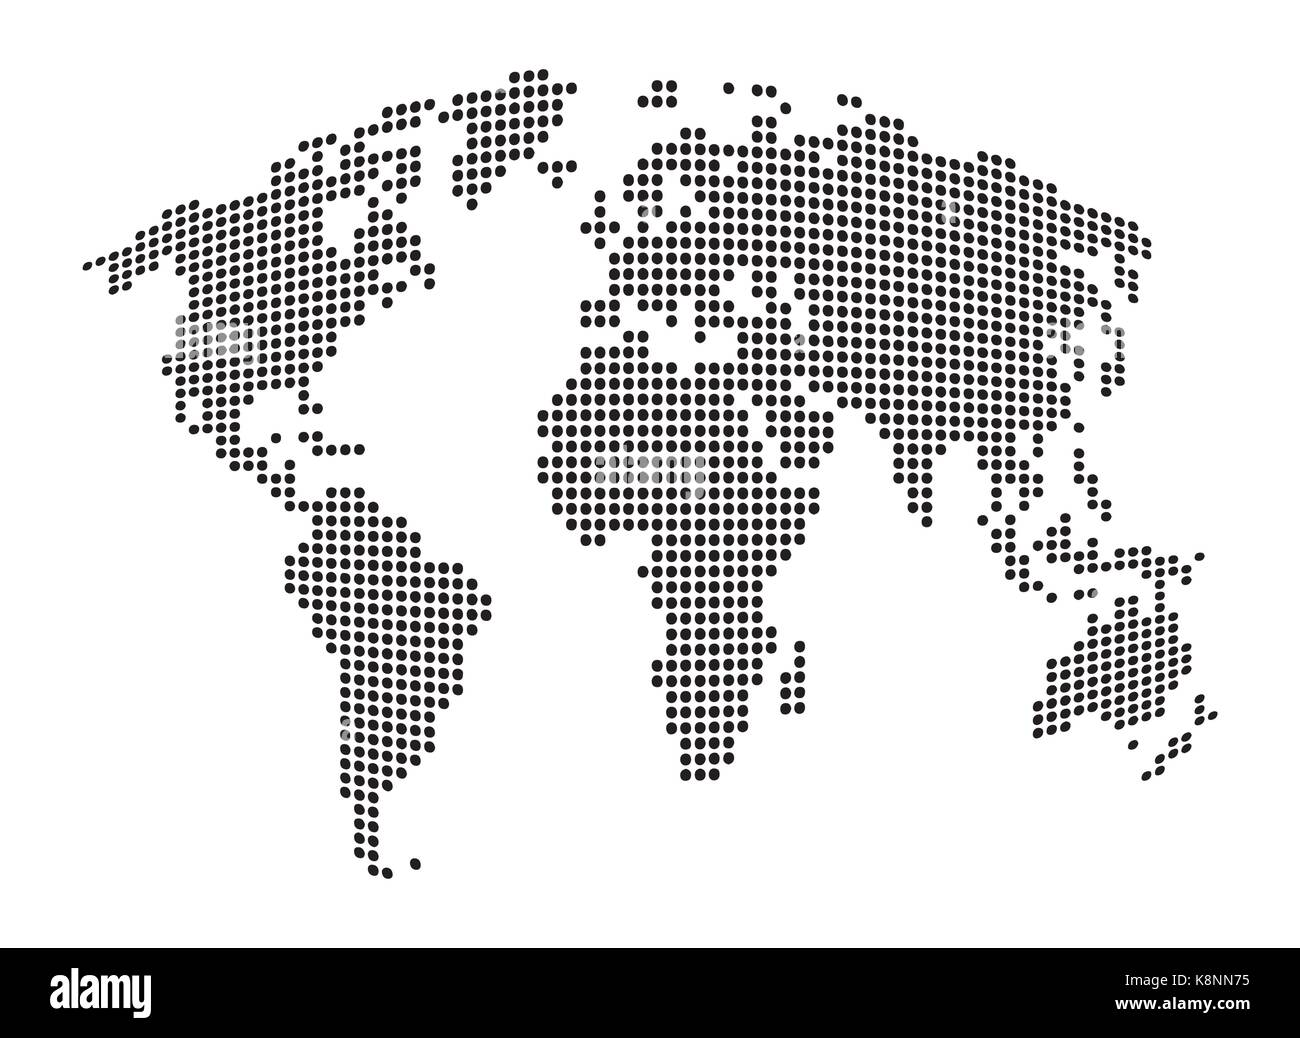 World Map Vector Dot Cut Out Stock Images & Pictures - Alamy